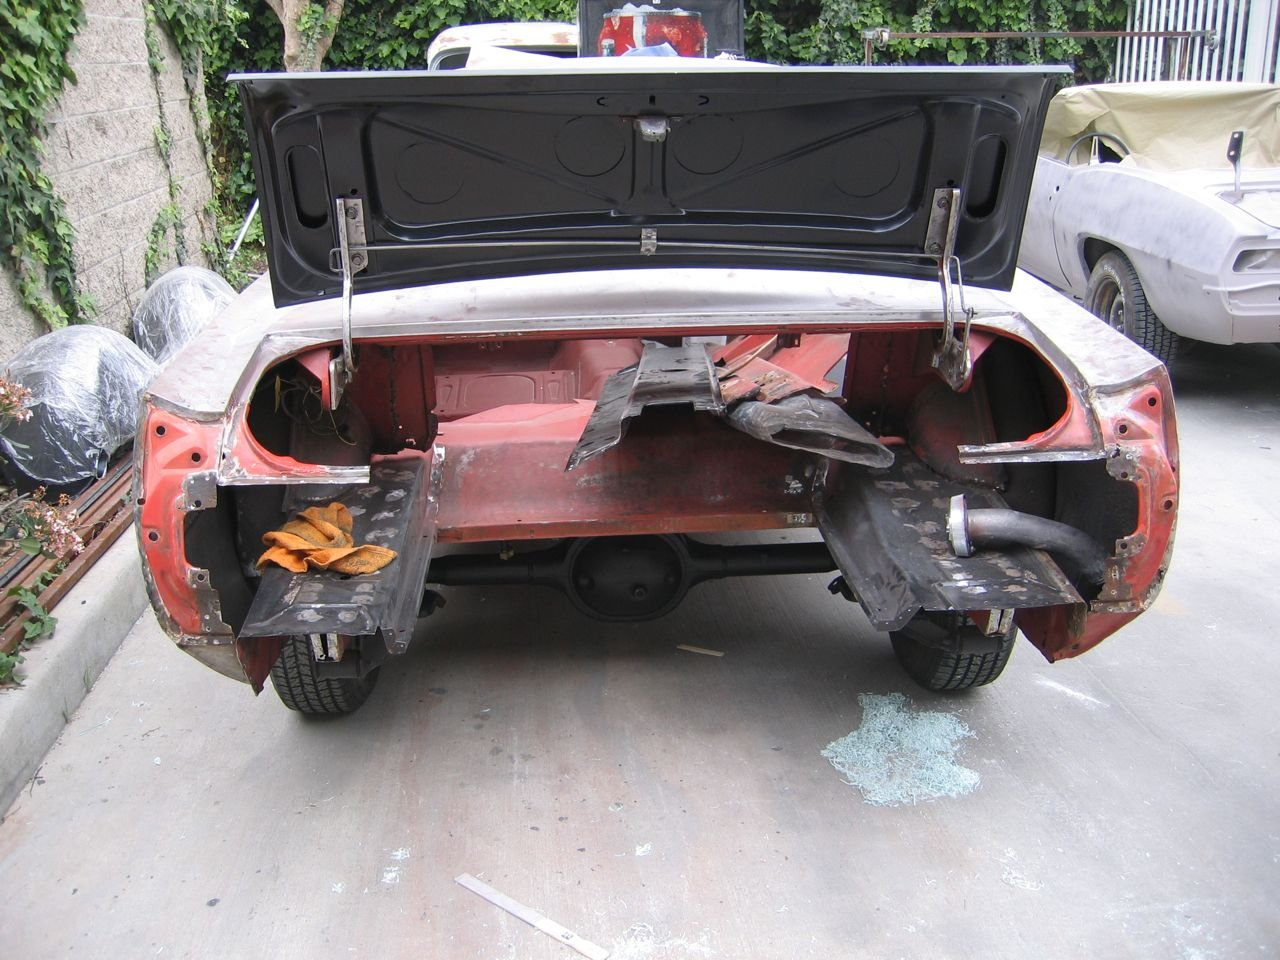 65 Mustang Convertible >> 1966 Mustang rear quarter panel and taillight panel - Ford Mustang Forum